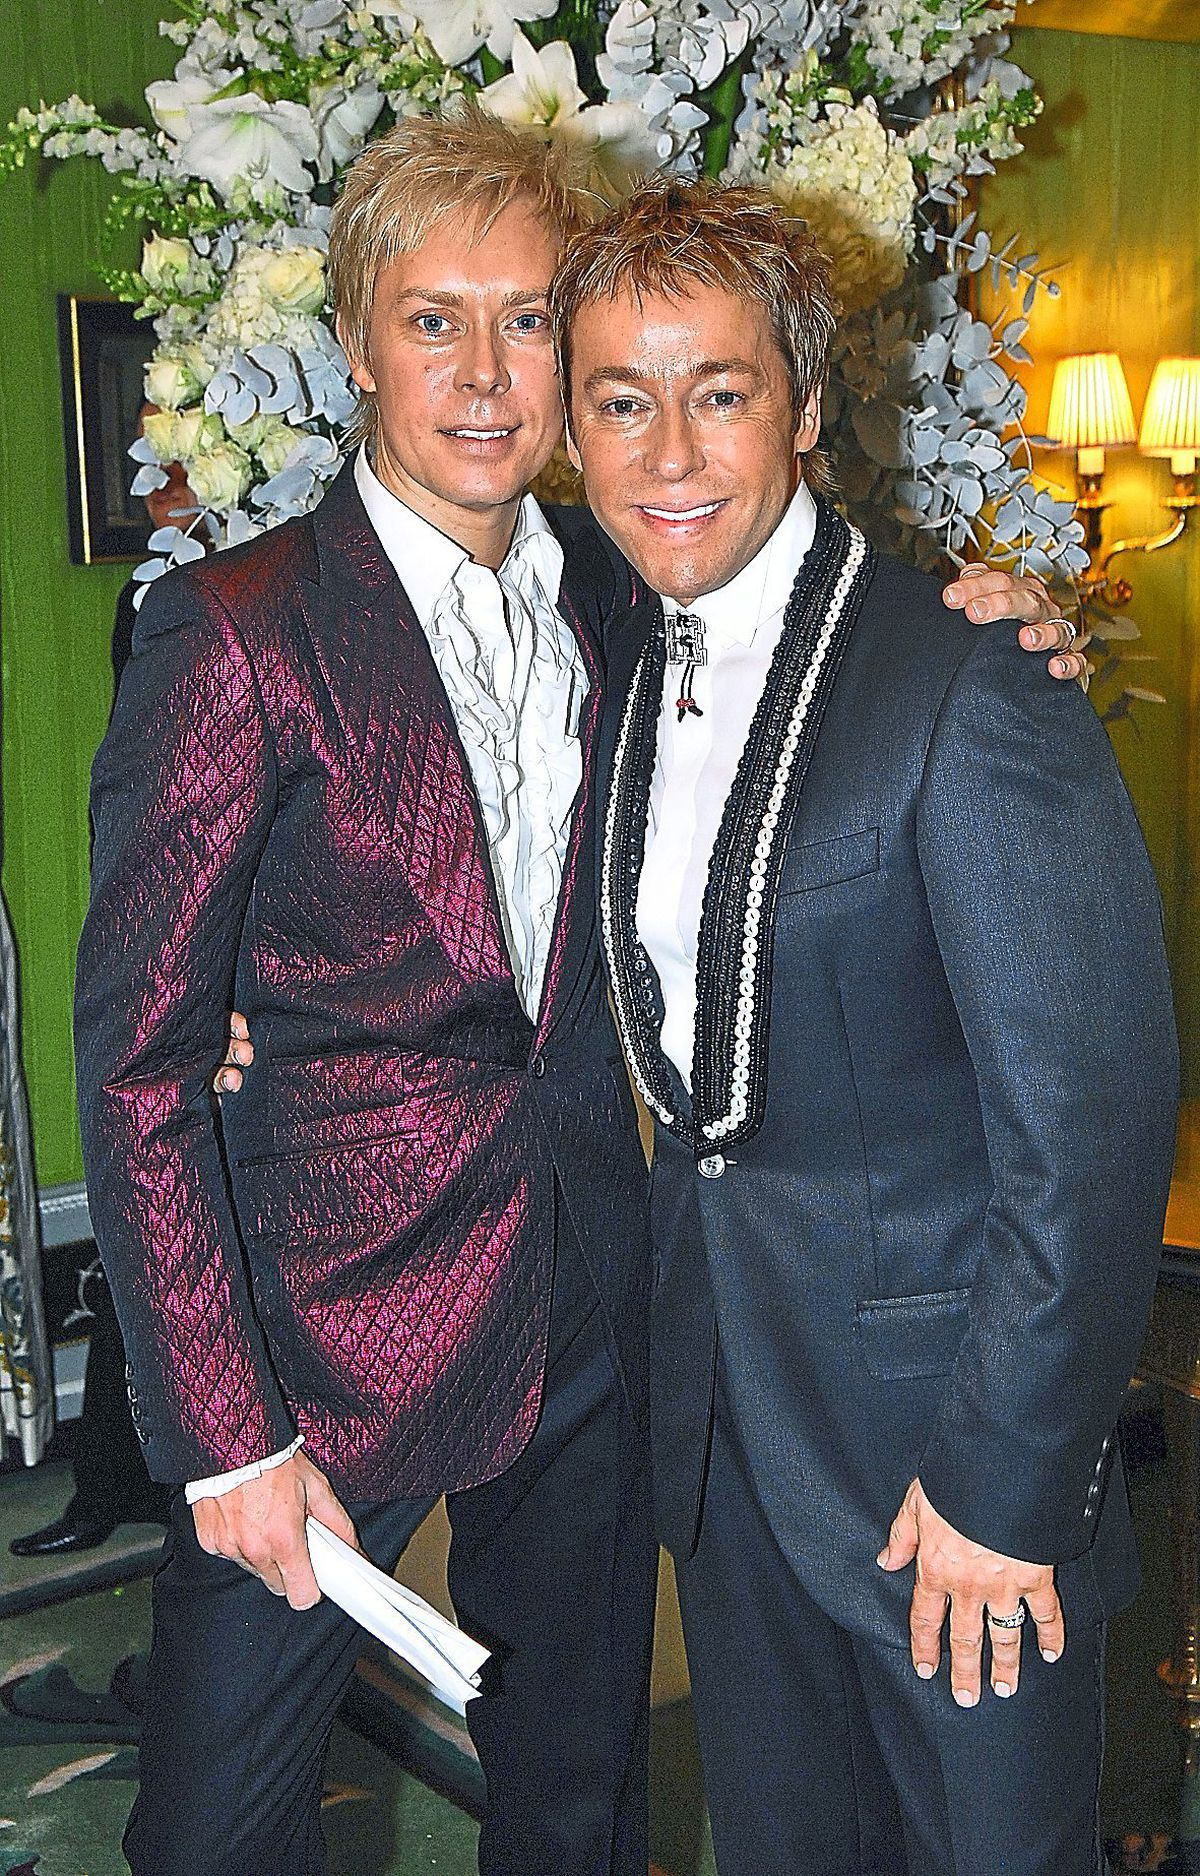 The wedding of Royston Blythe and Nick Malenko at the Dorchester Hotel, London in 2006